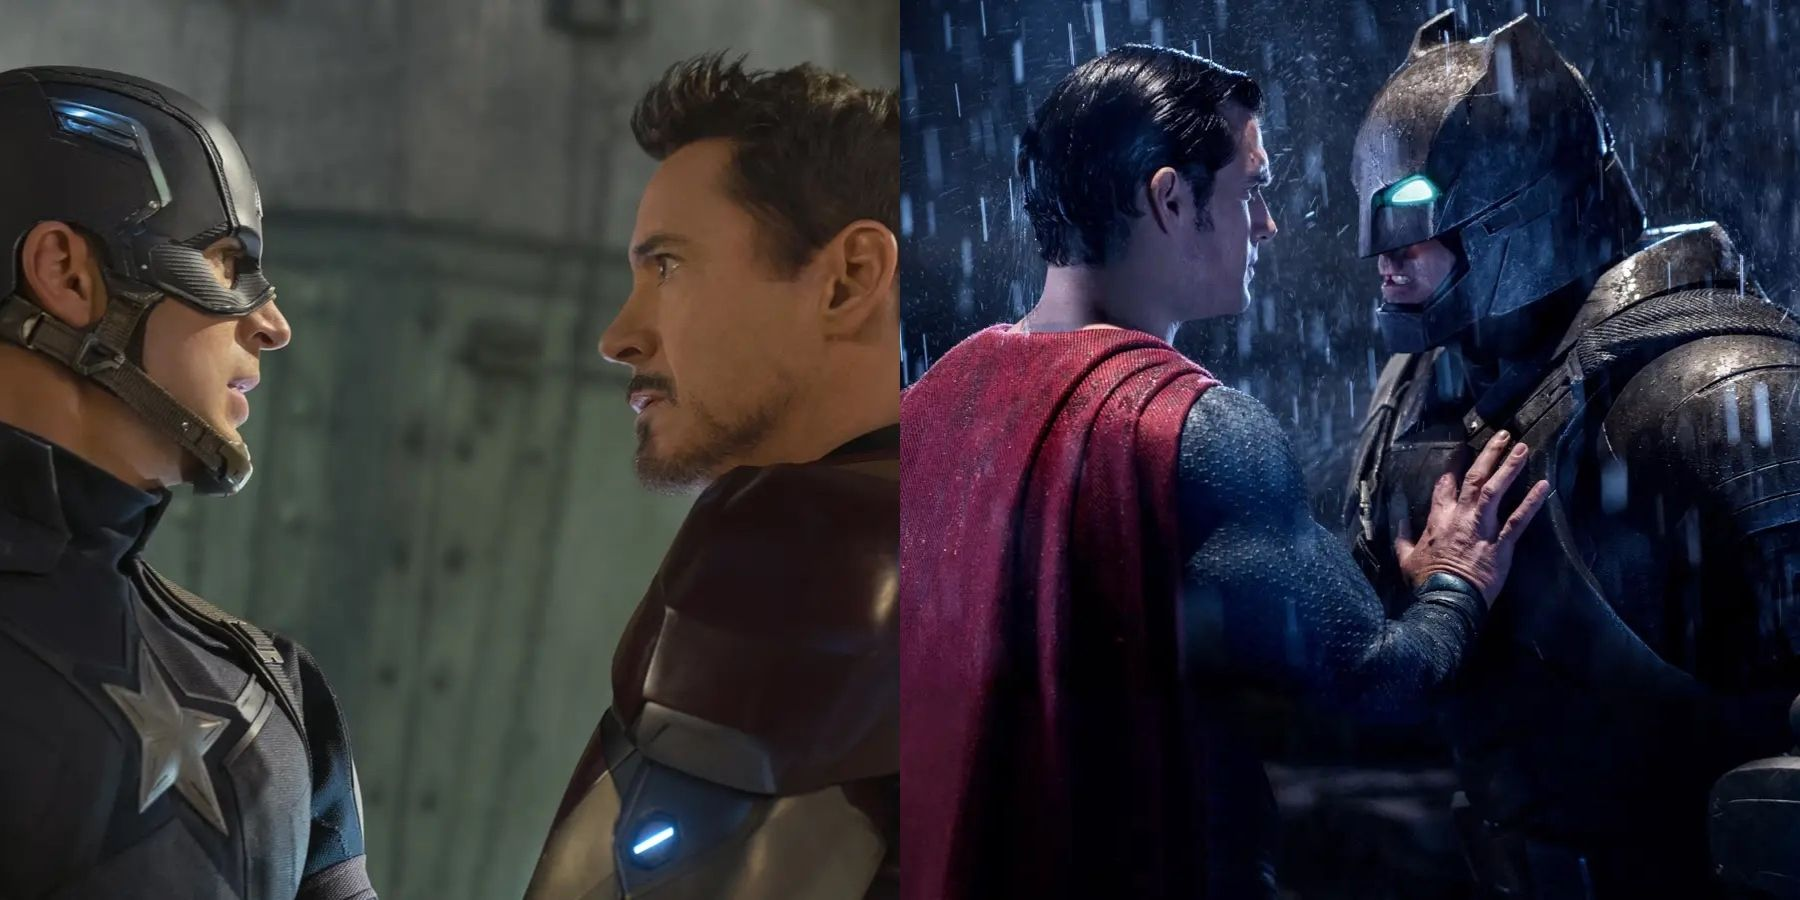 Which 2016 Superhero Film Was Better At Pitting Heroes Against Each Other?